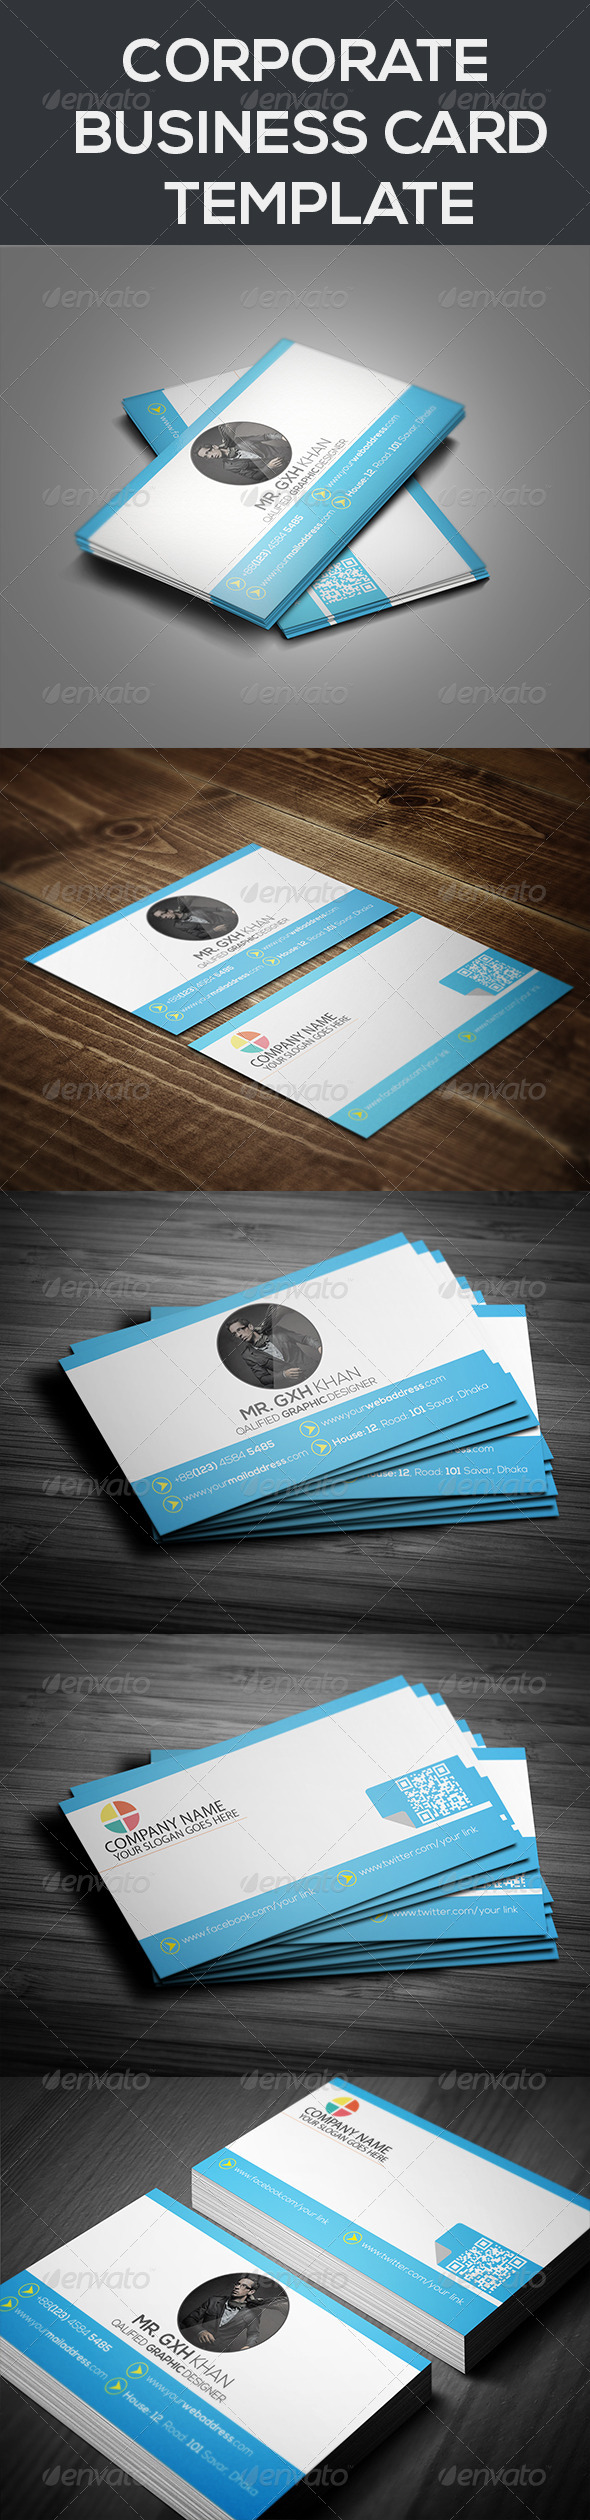 GraphicRiver Corporate Business Card Template 7511783